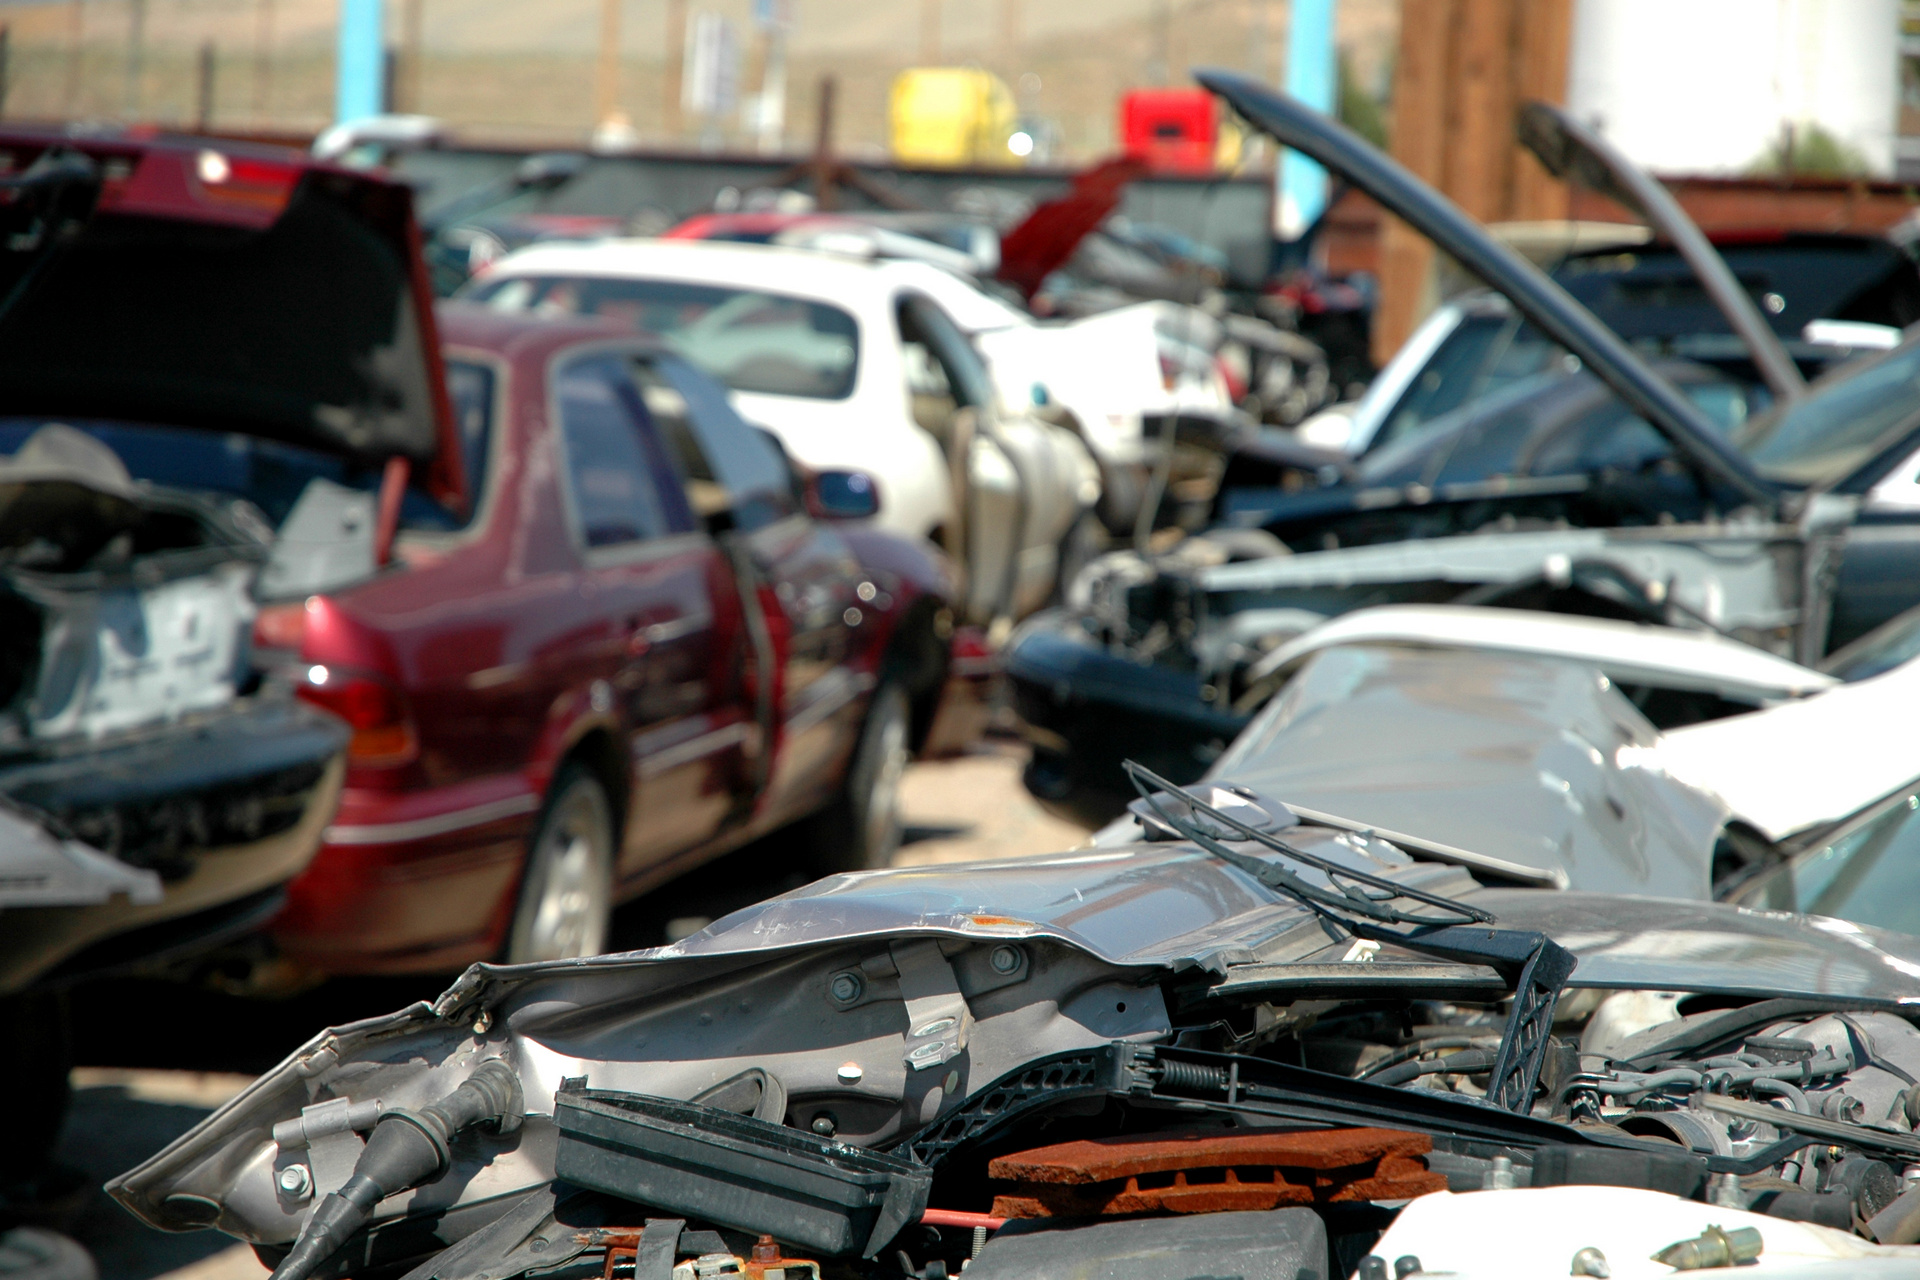 Salvage yard in Albuquerque, New Mexico © Clinton Steeds/CC BY 2.0 ...